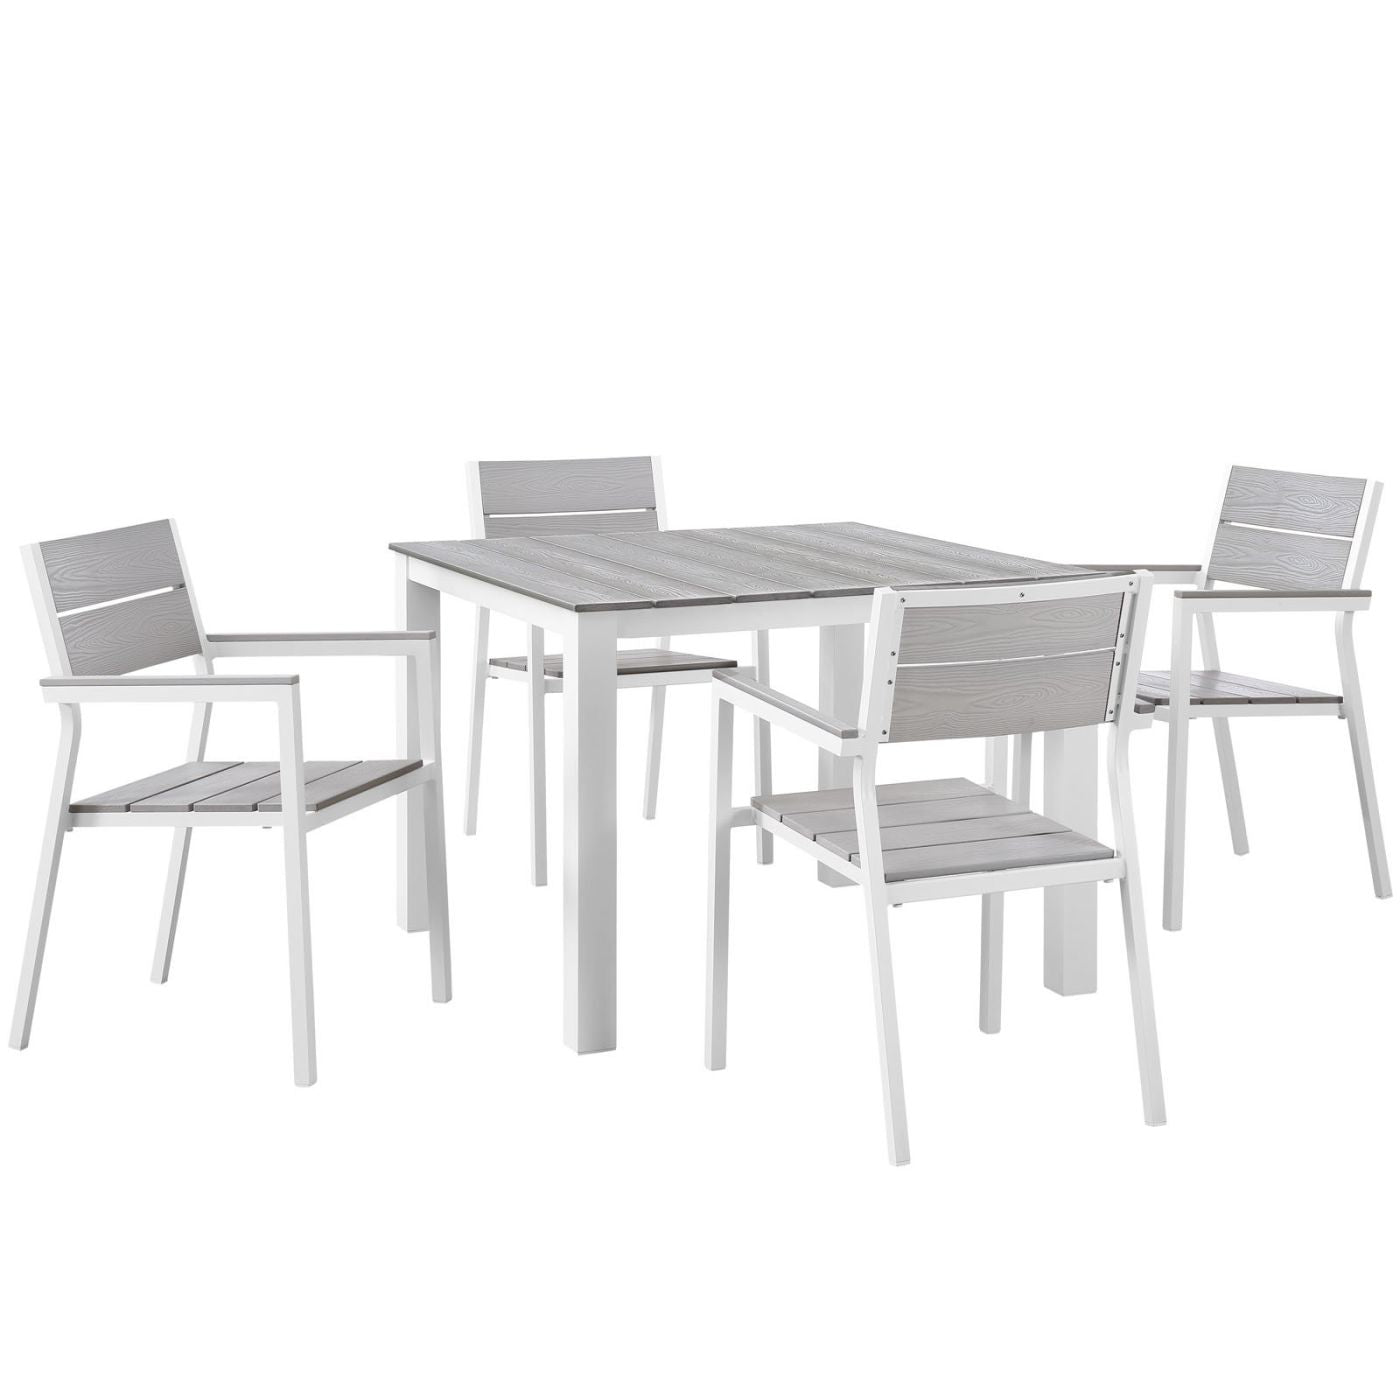 Groovy Modway Outdoor Dining Sets On Sale Eei 1745 Whi Lgr Set Maine Modern 5 Piece Outdoor Patio Dining Set Solid Light Gray Wood Only Only 802 55 At Beutiful Home Inspiration Ommitmahrainfo